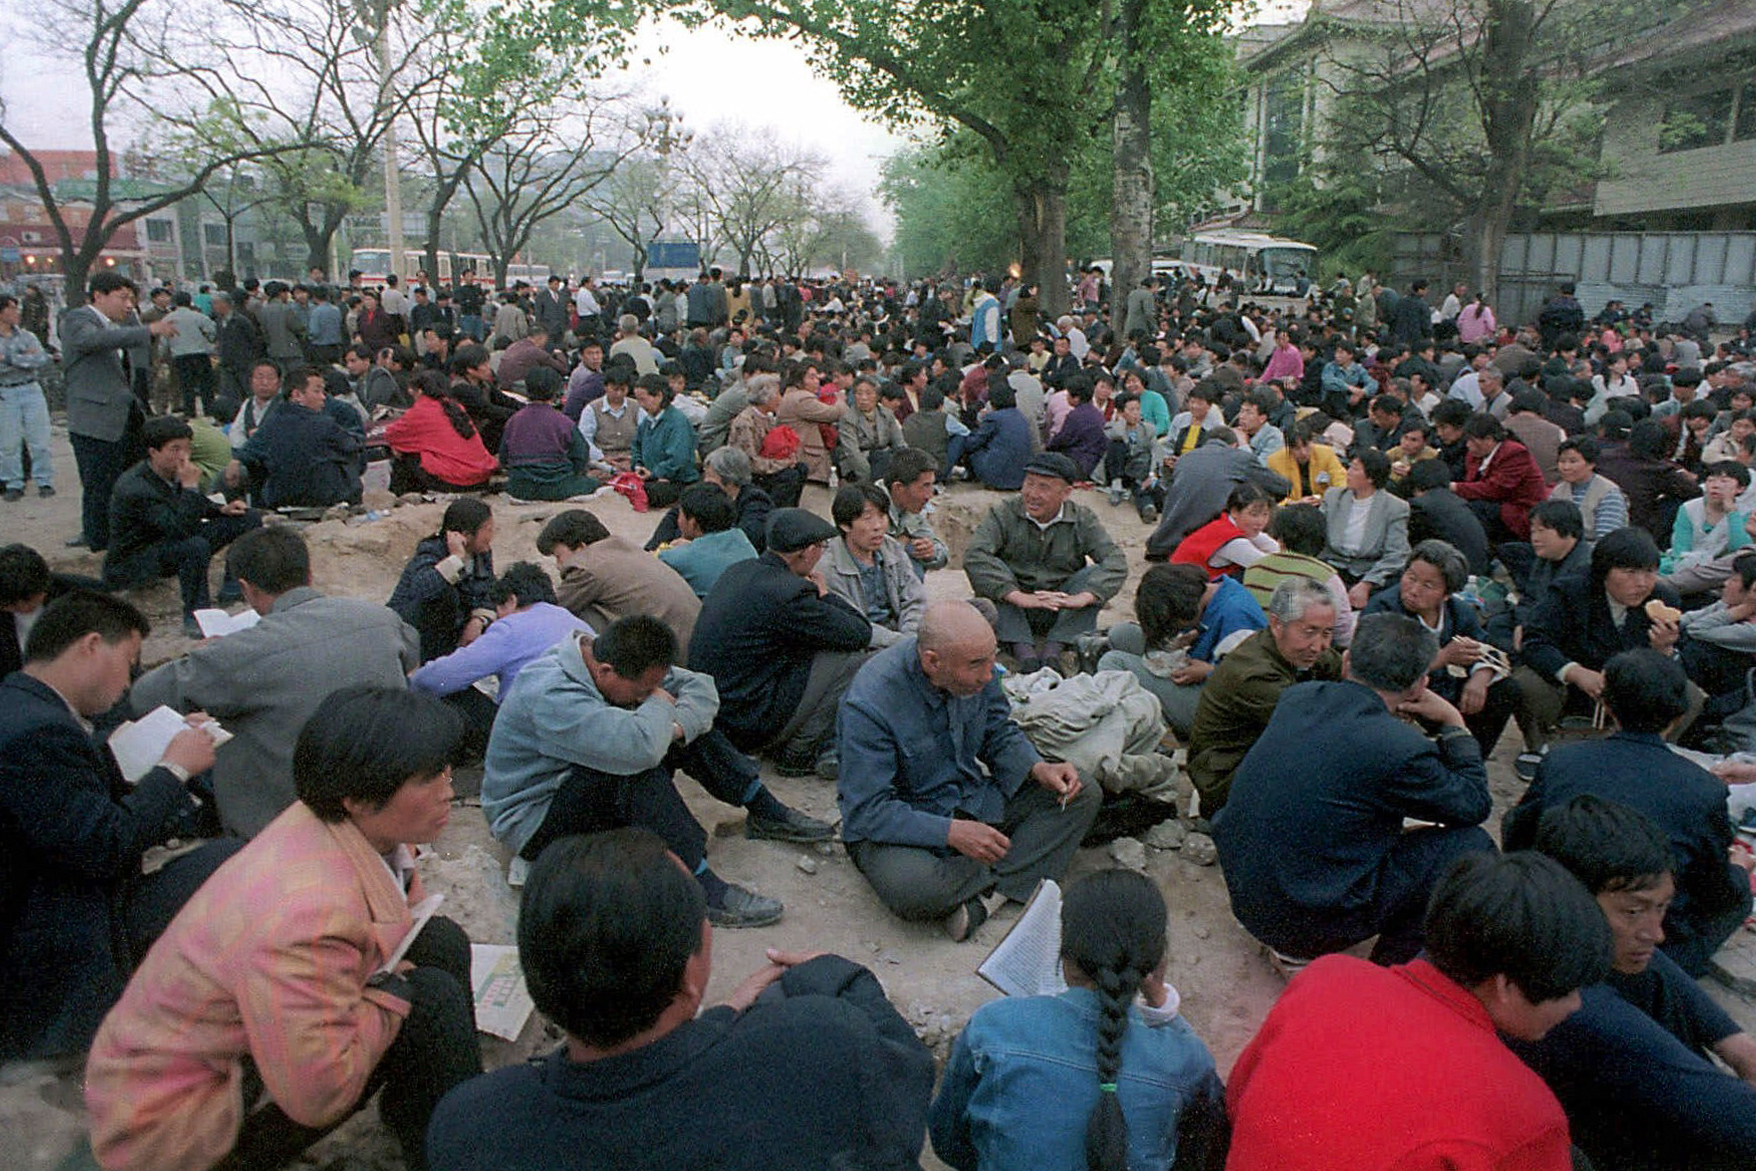 Falun Gong practitioners gathered around Zhongnanhai to silently, peacefully appeal for fair treatment on April 25, 1999. (Photo courtesy Clearwisdom.net)